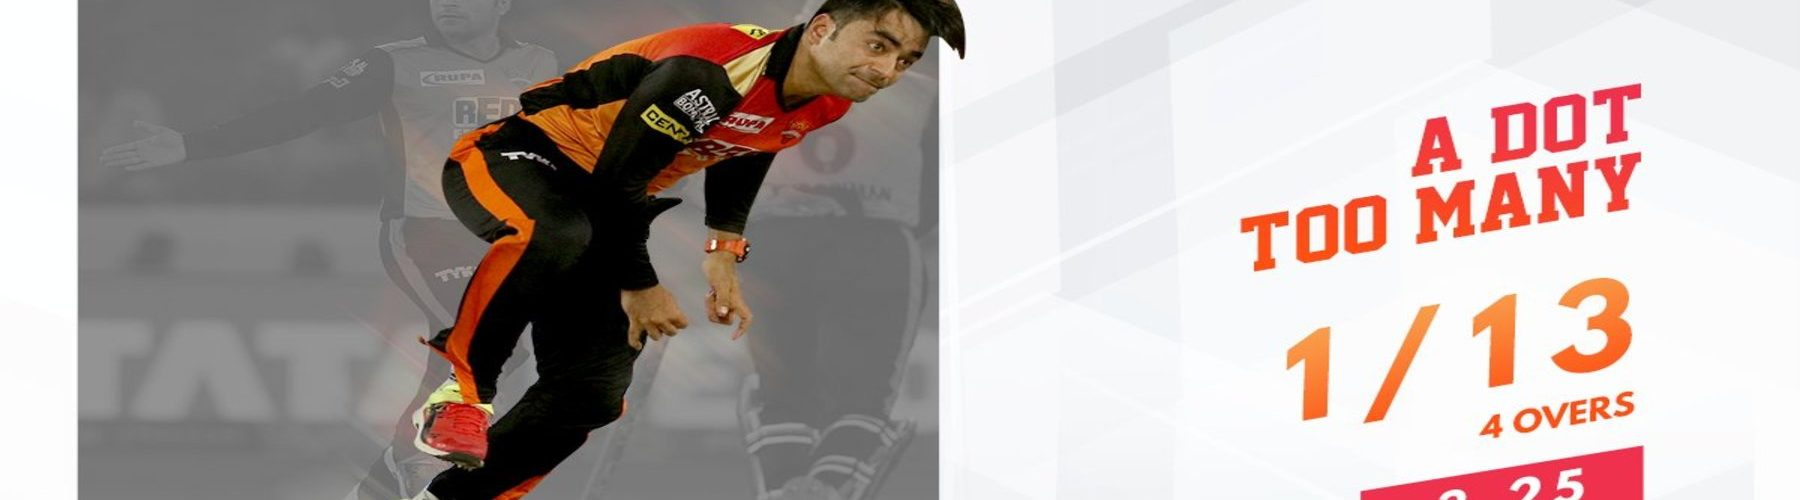 Meet Rashid Khan, who got only 1 wicket and awarded as Man of the Match